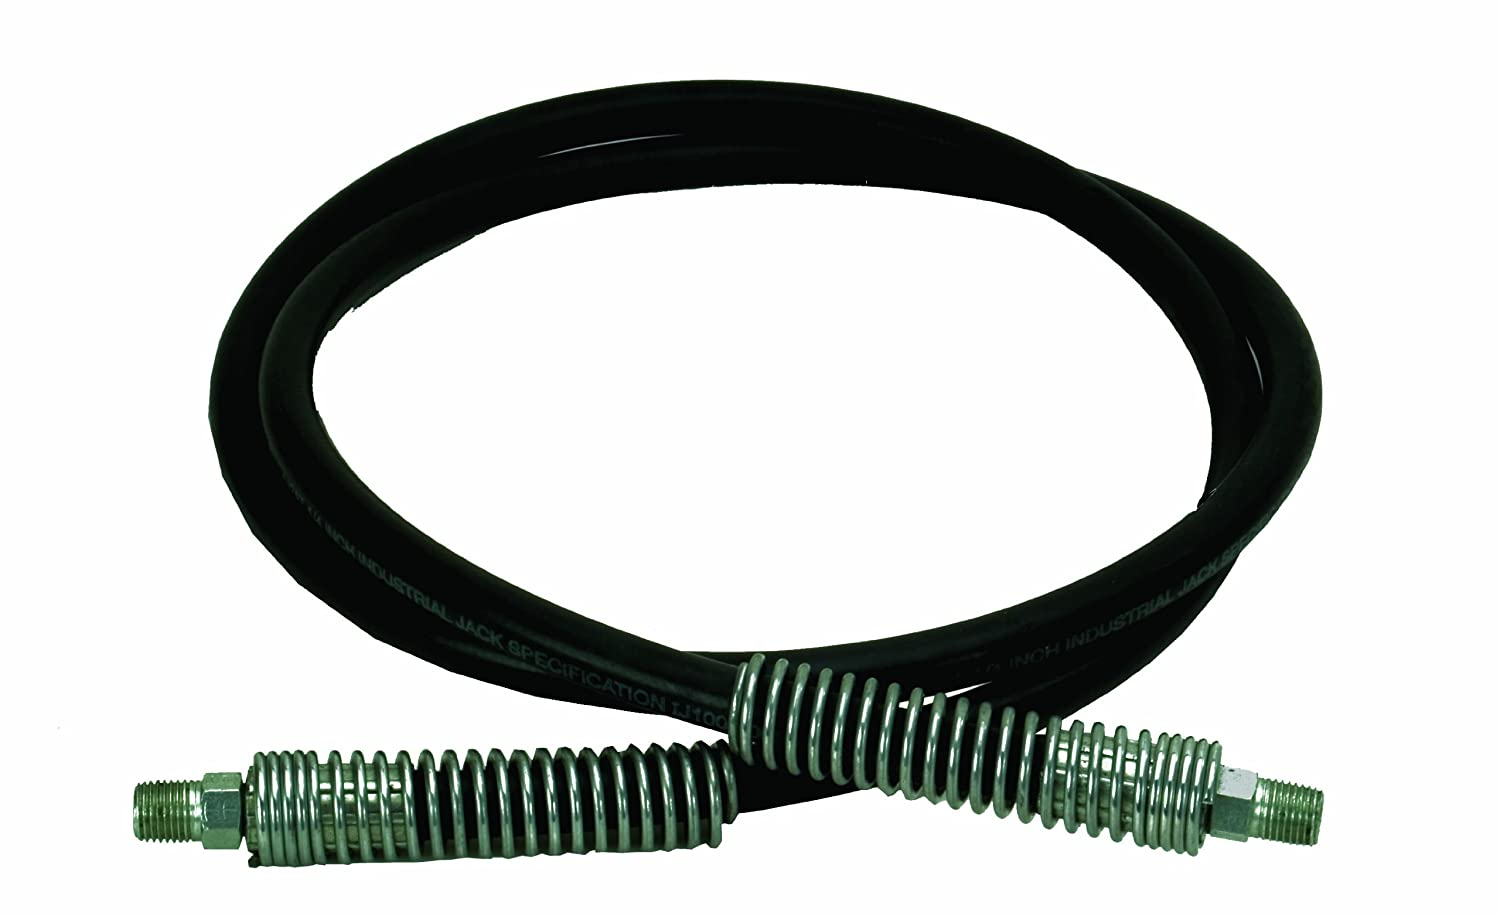 BVA Hydraulics CS1414 6' Hose, 1/4' Internal Diameter, 1/4'-18 NPTF 1/4 Internal Diameter 1/4-18 NPTF